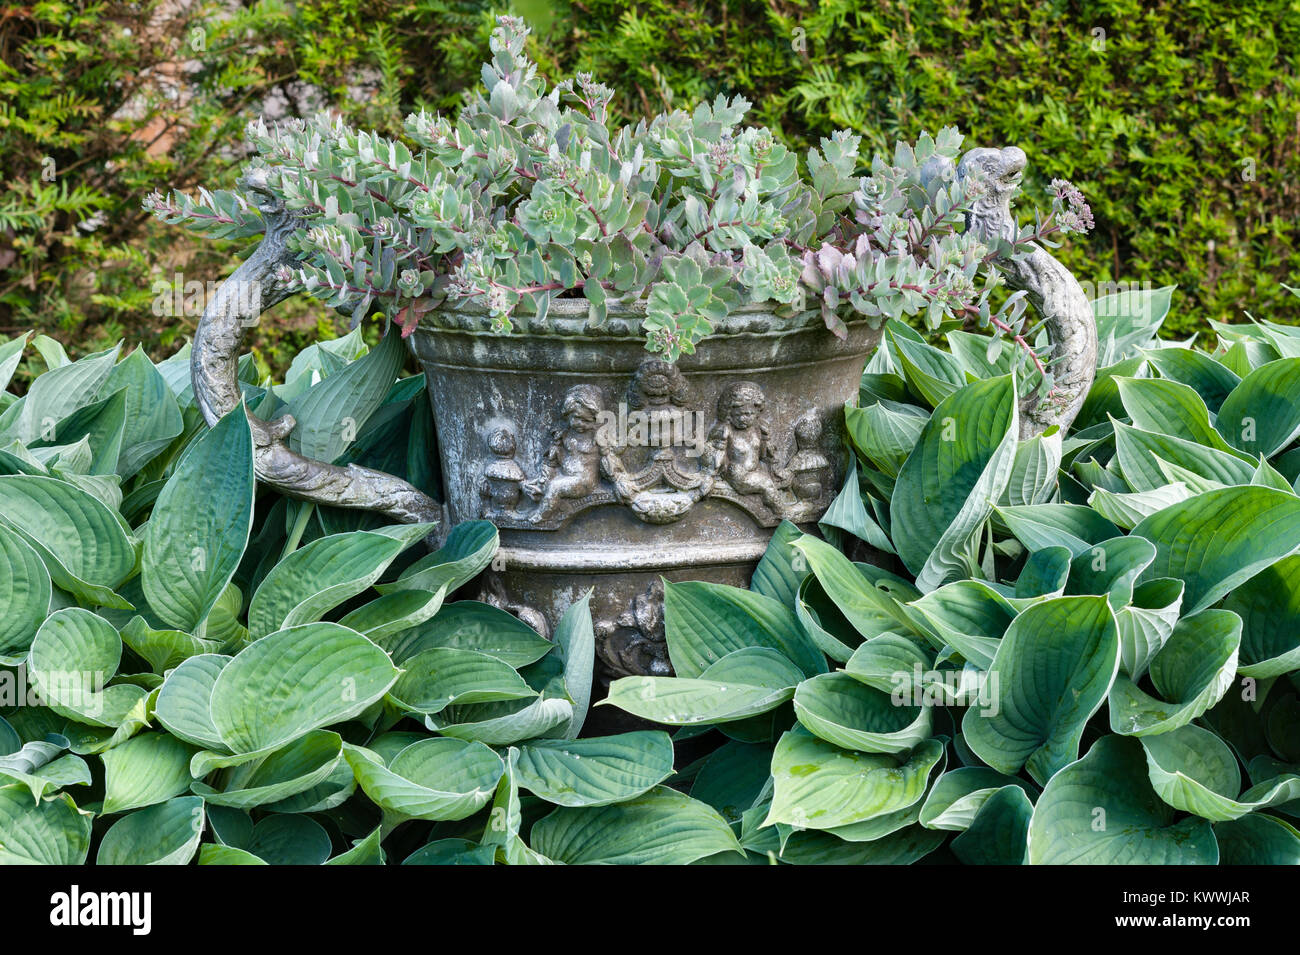 Lanhydrock, Bodmin, Cornwall, UK. An old lead urn in the gardens, surrounded by hostas - Stock Image